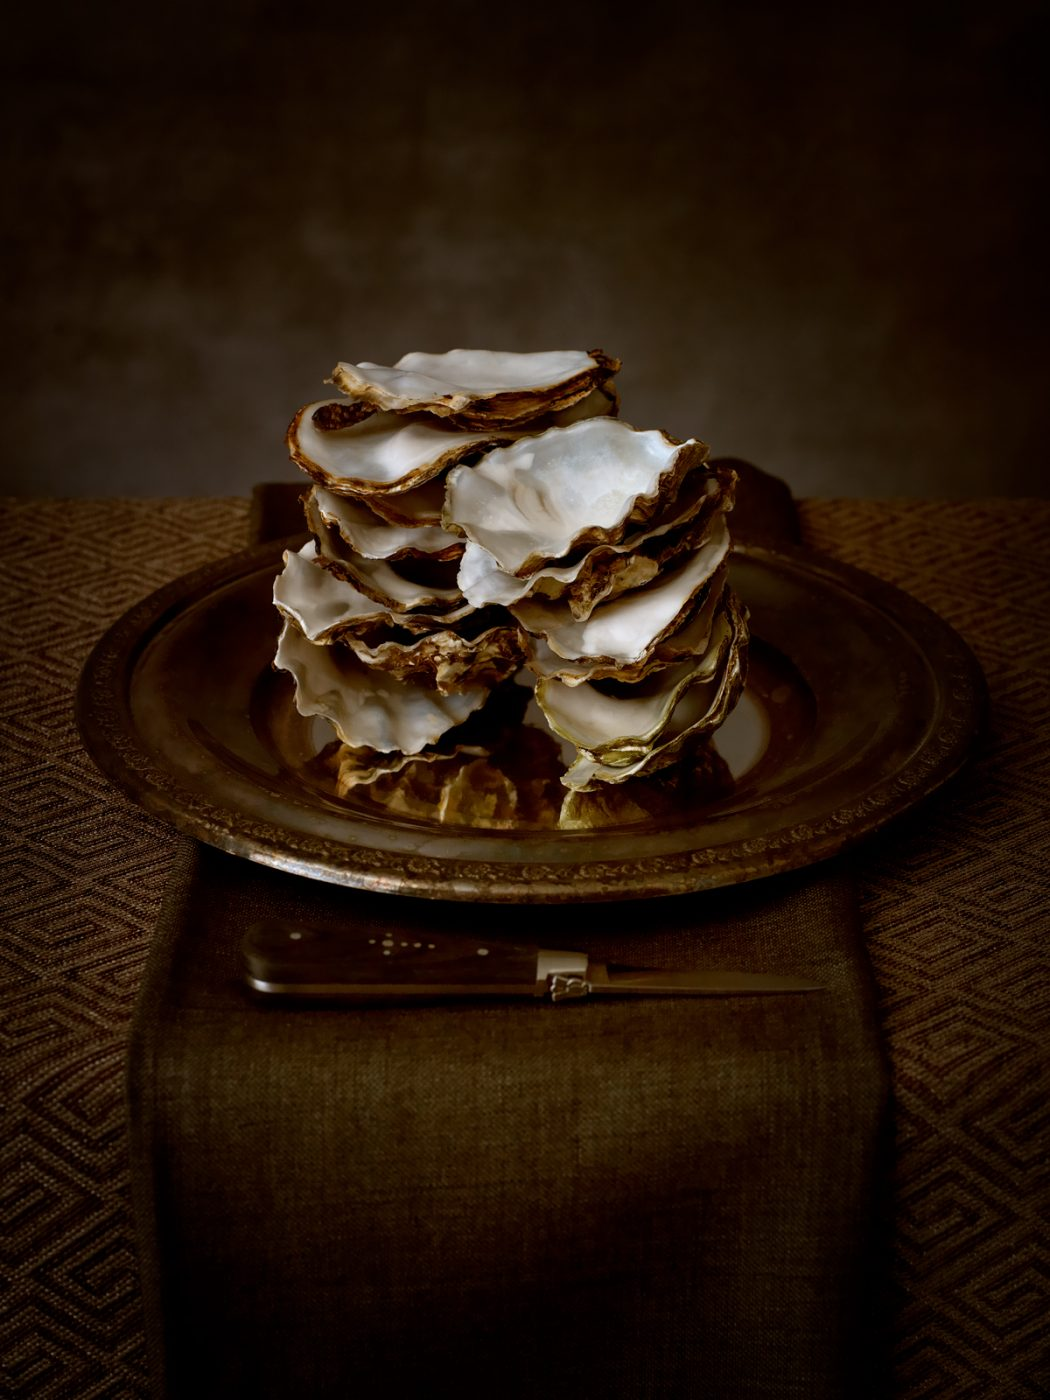 Renata Dutree: Oysters on a Plate